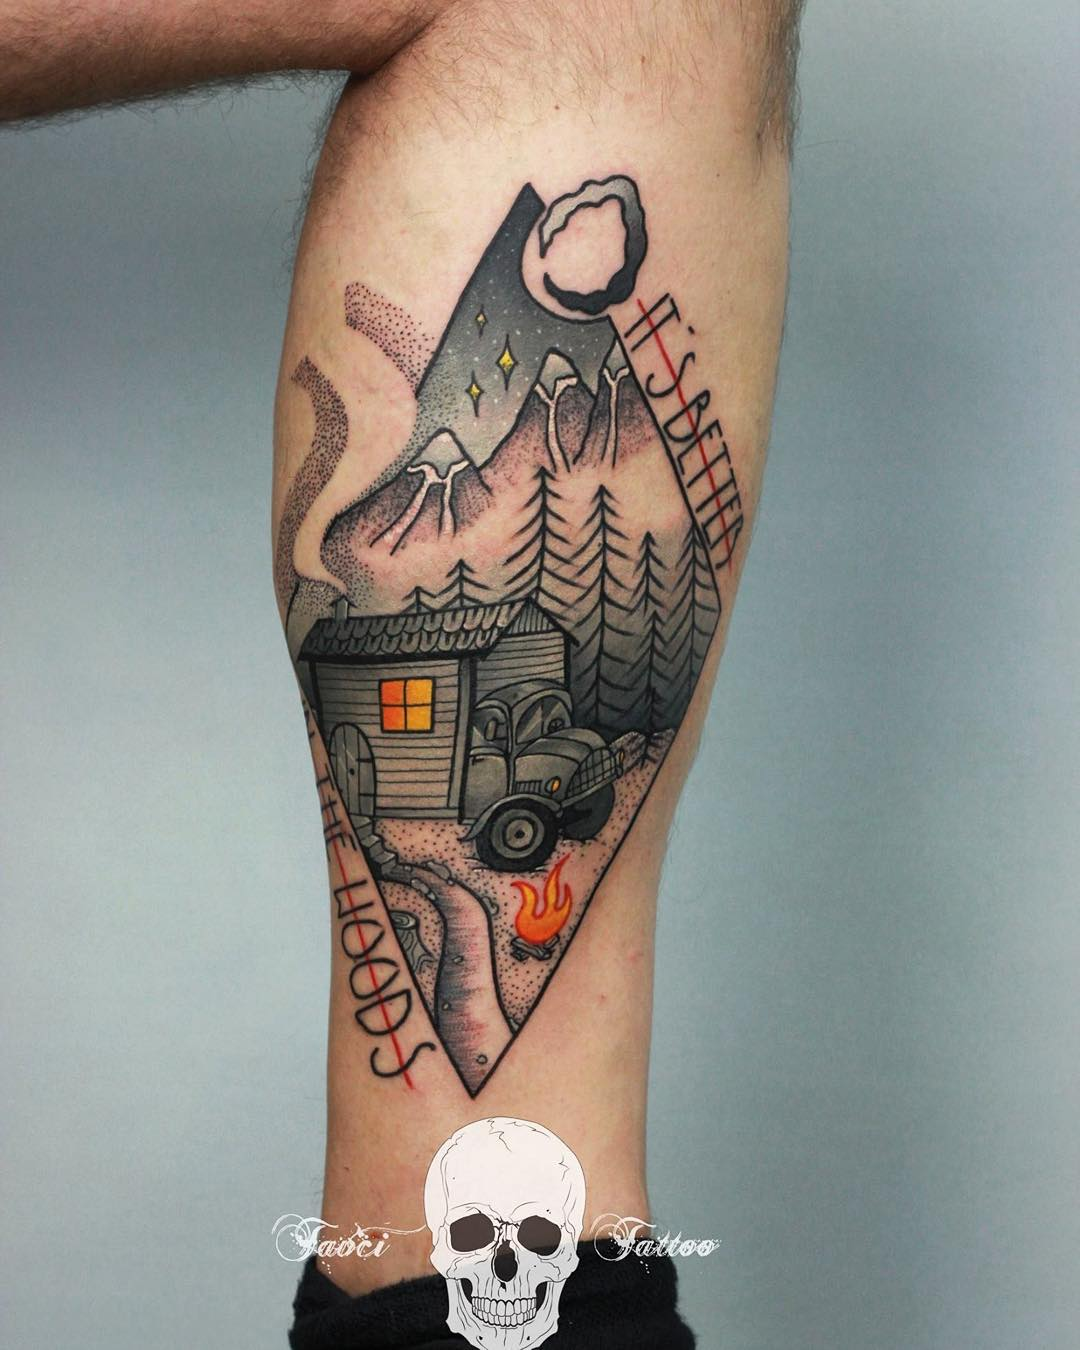 strange landscape of some hut in woods tattoo on leg